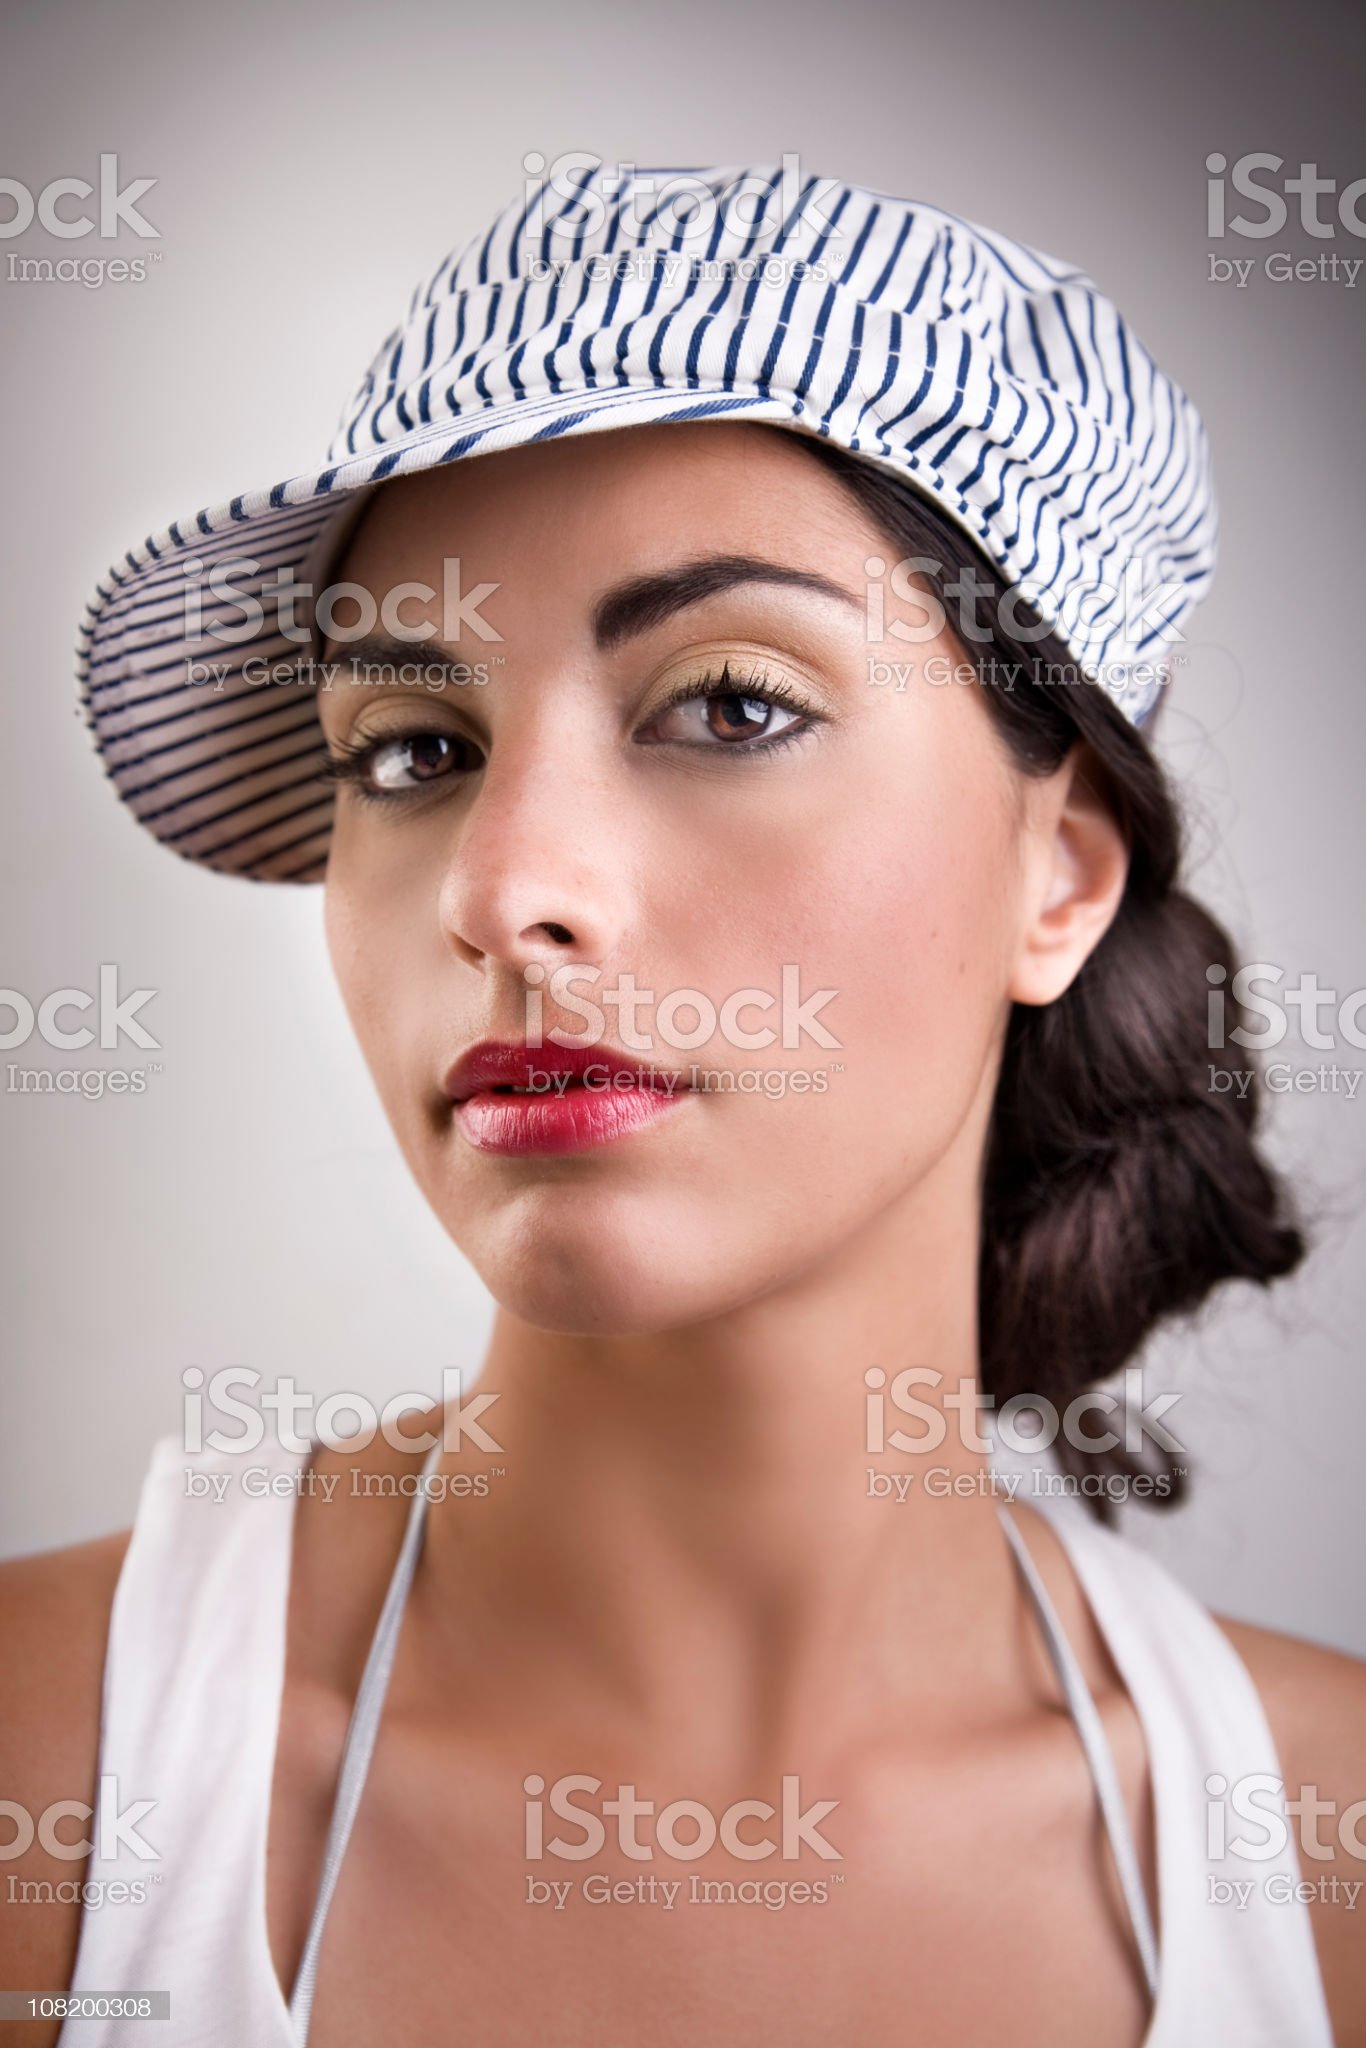 Young Woman Wearing Blue Striped Hat royalty-free stock photo